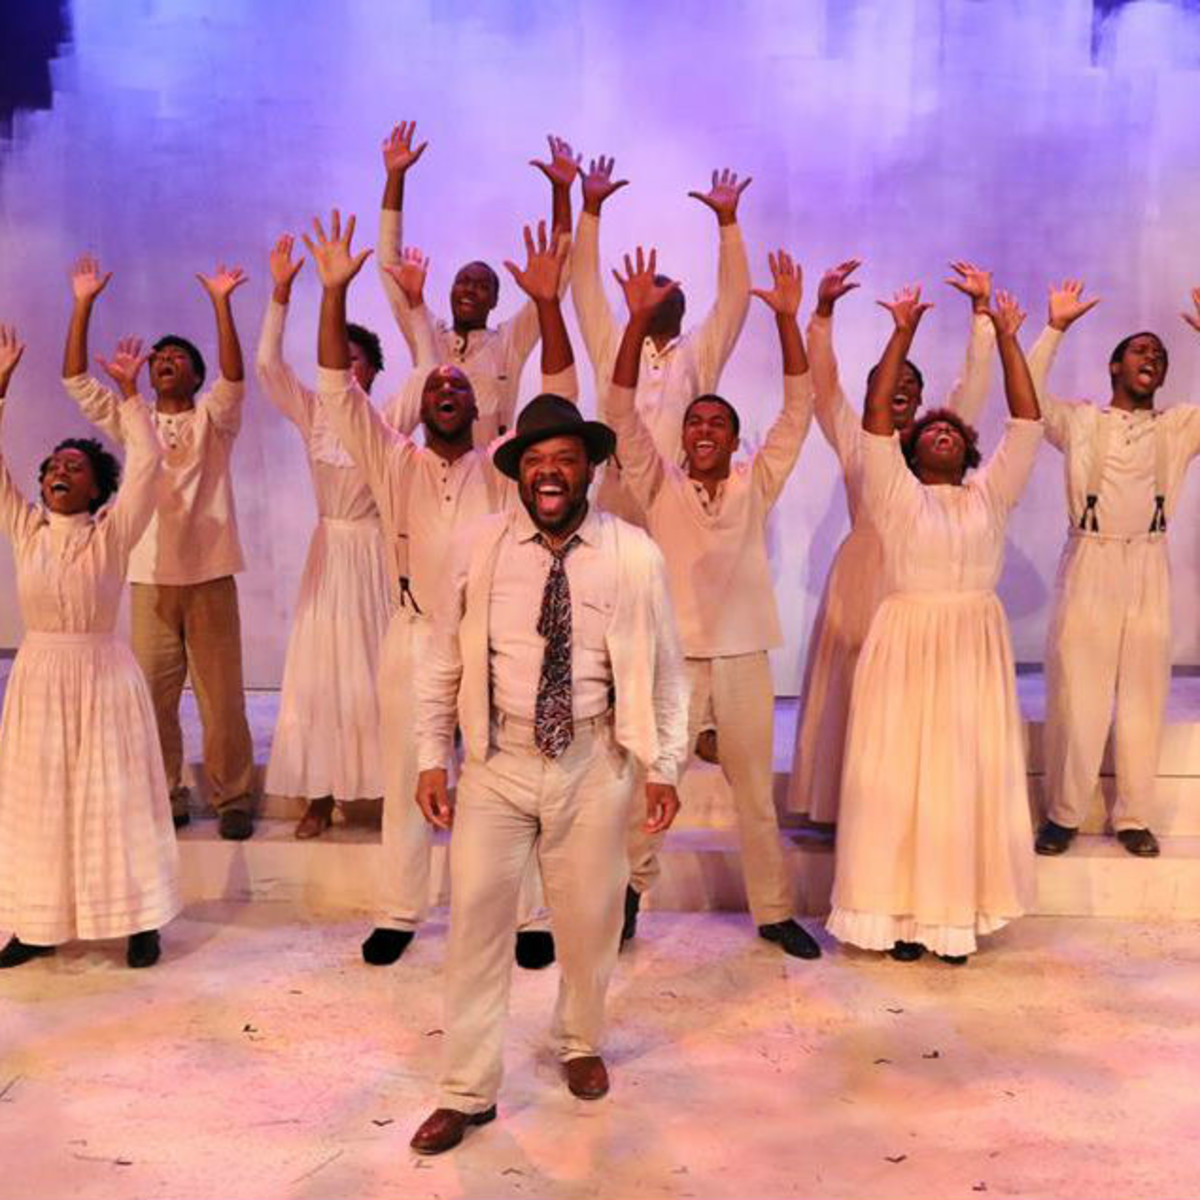 Jubilee Theatre presents The Color Purple